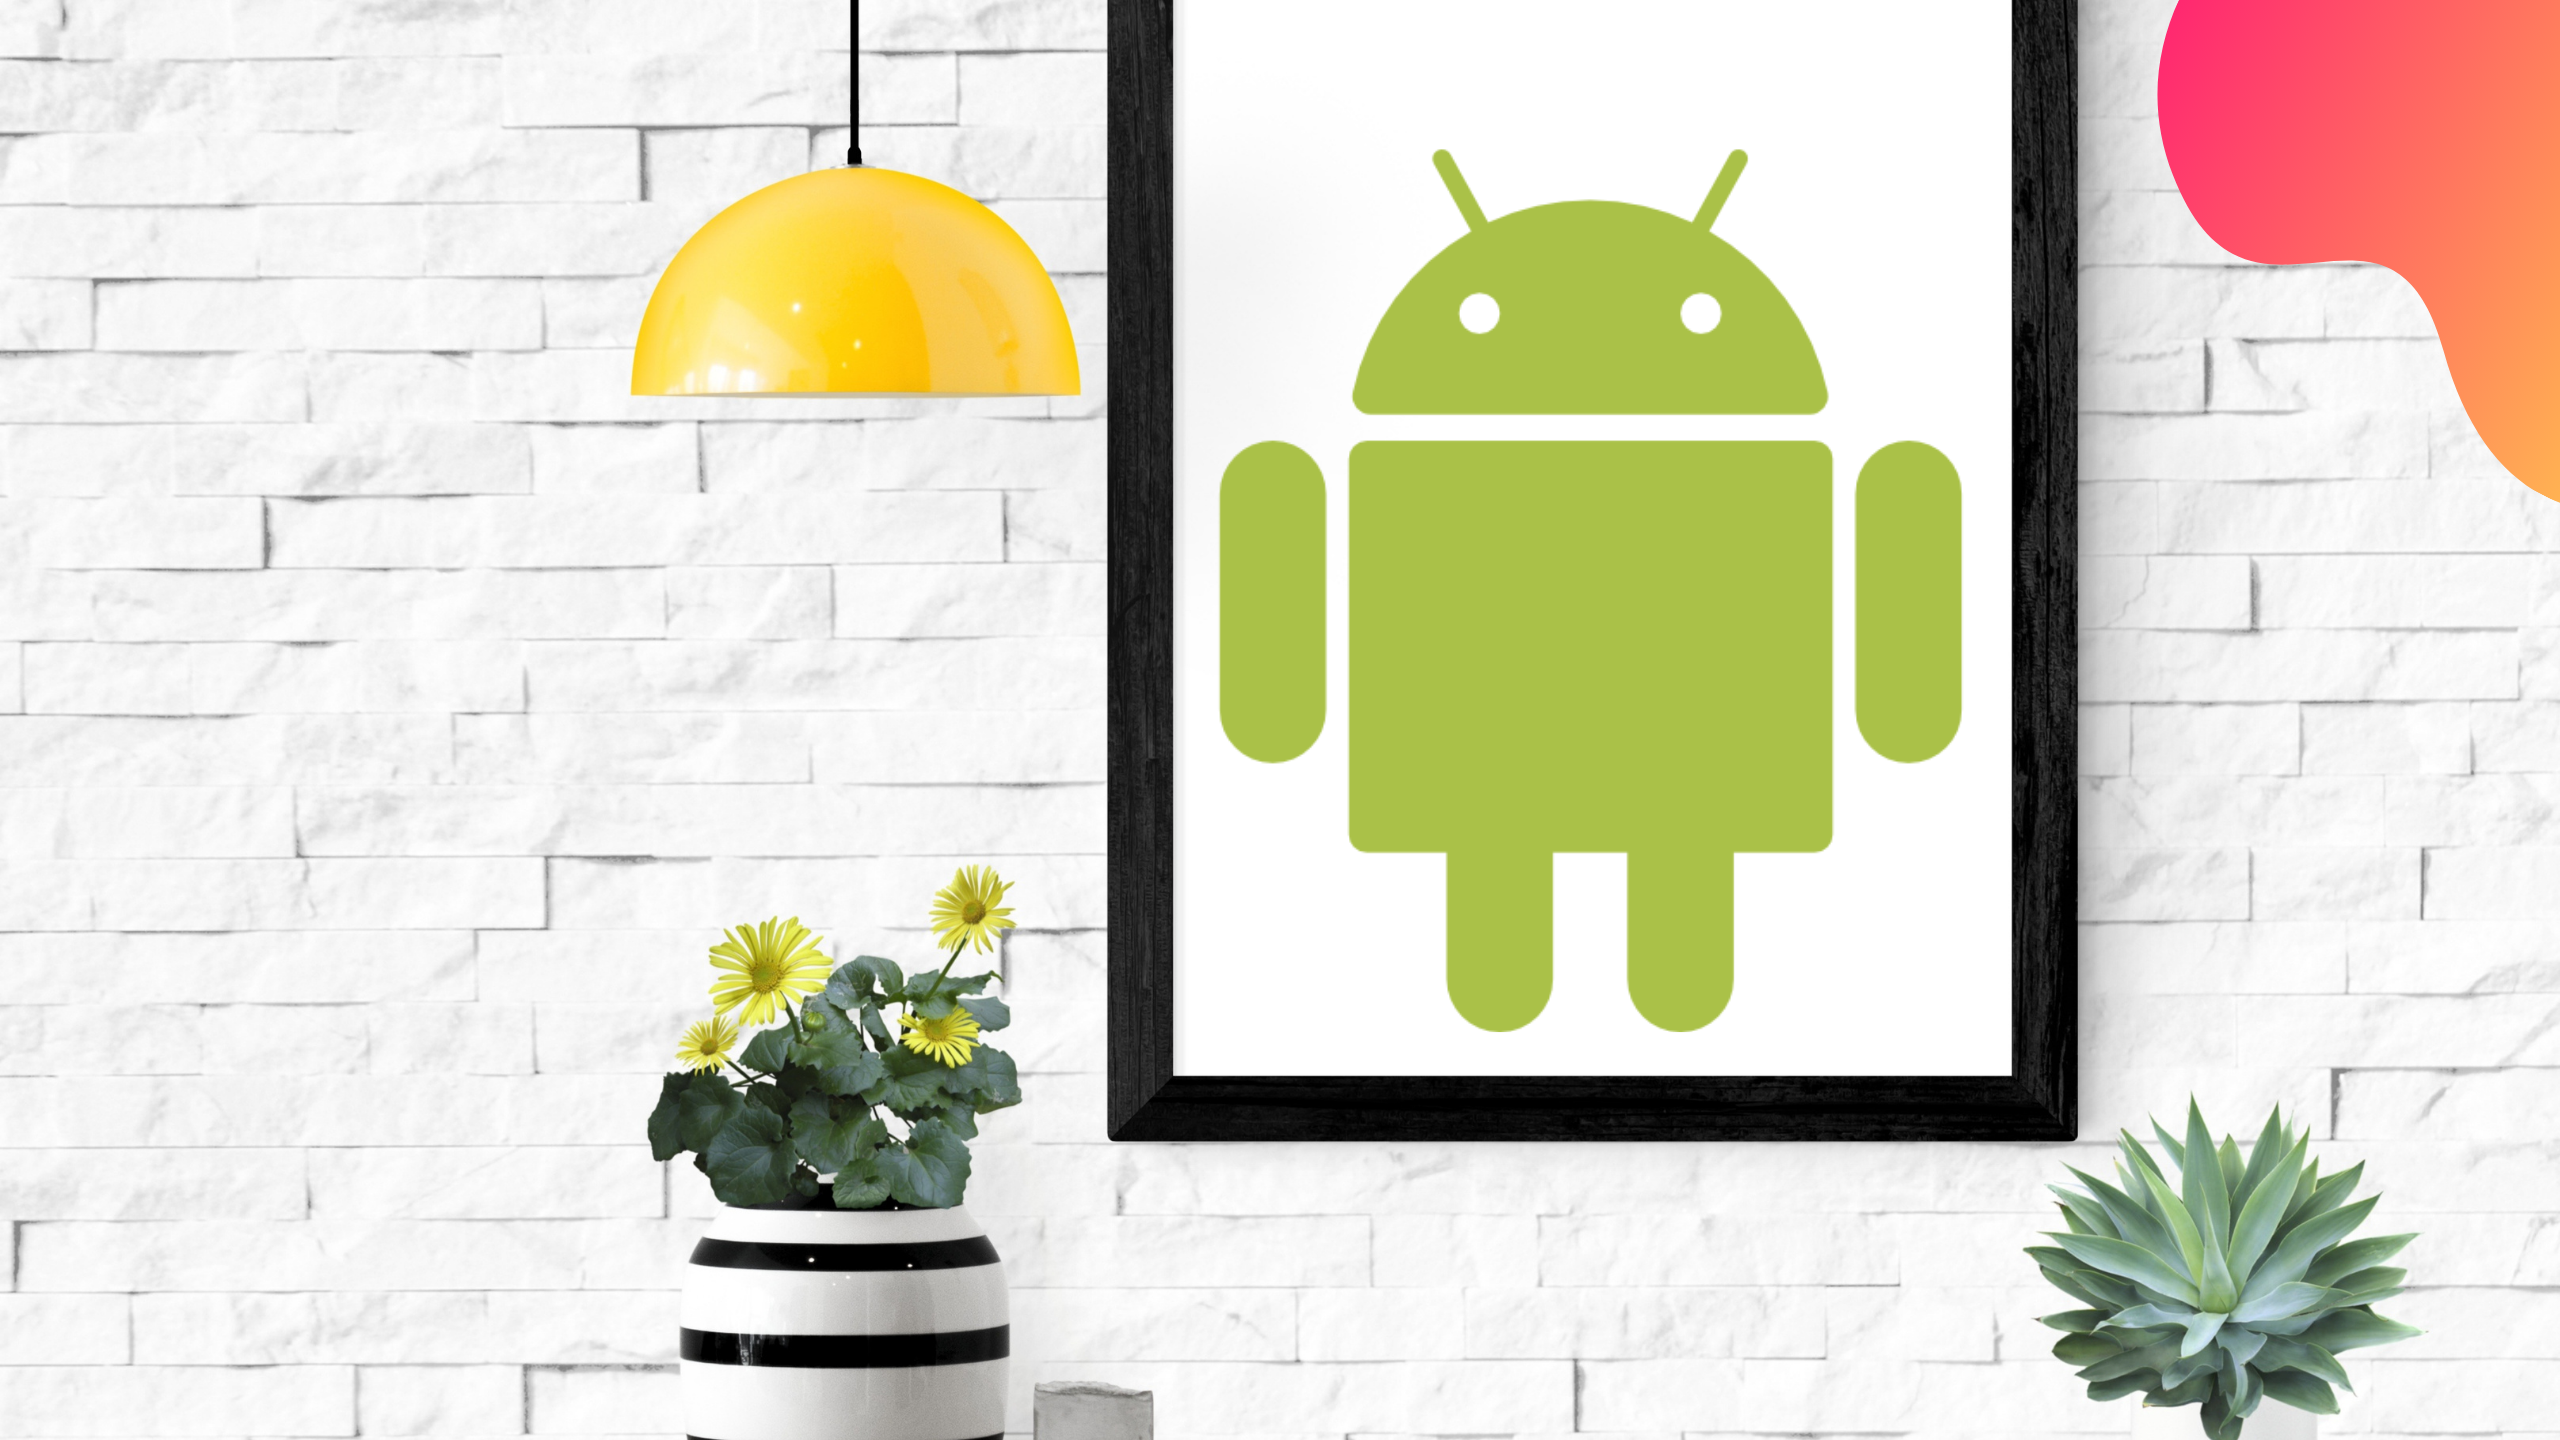 How to Reverse Engineering an Android App